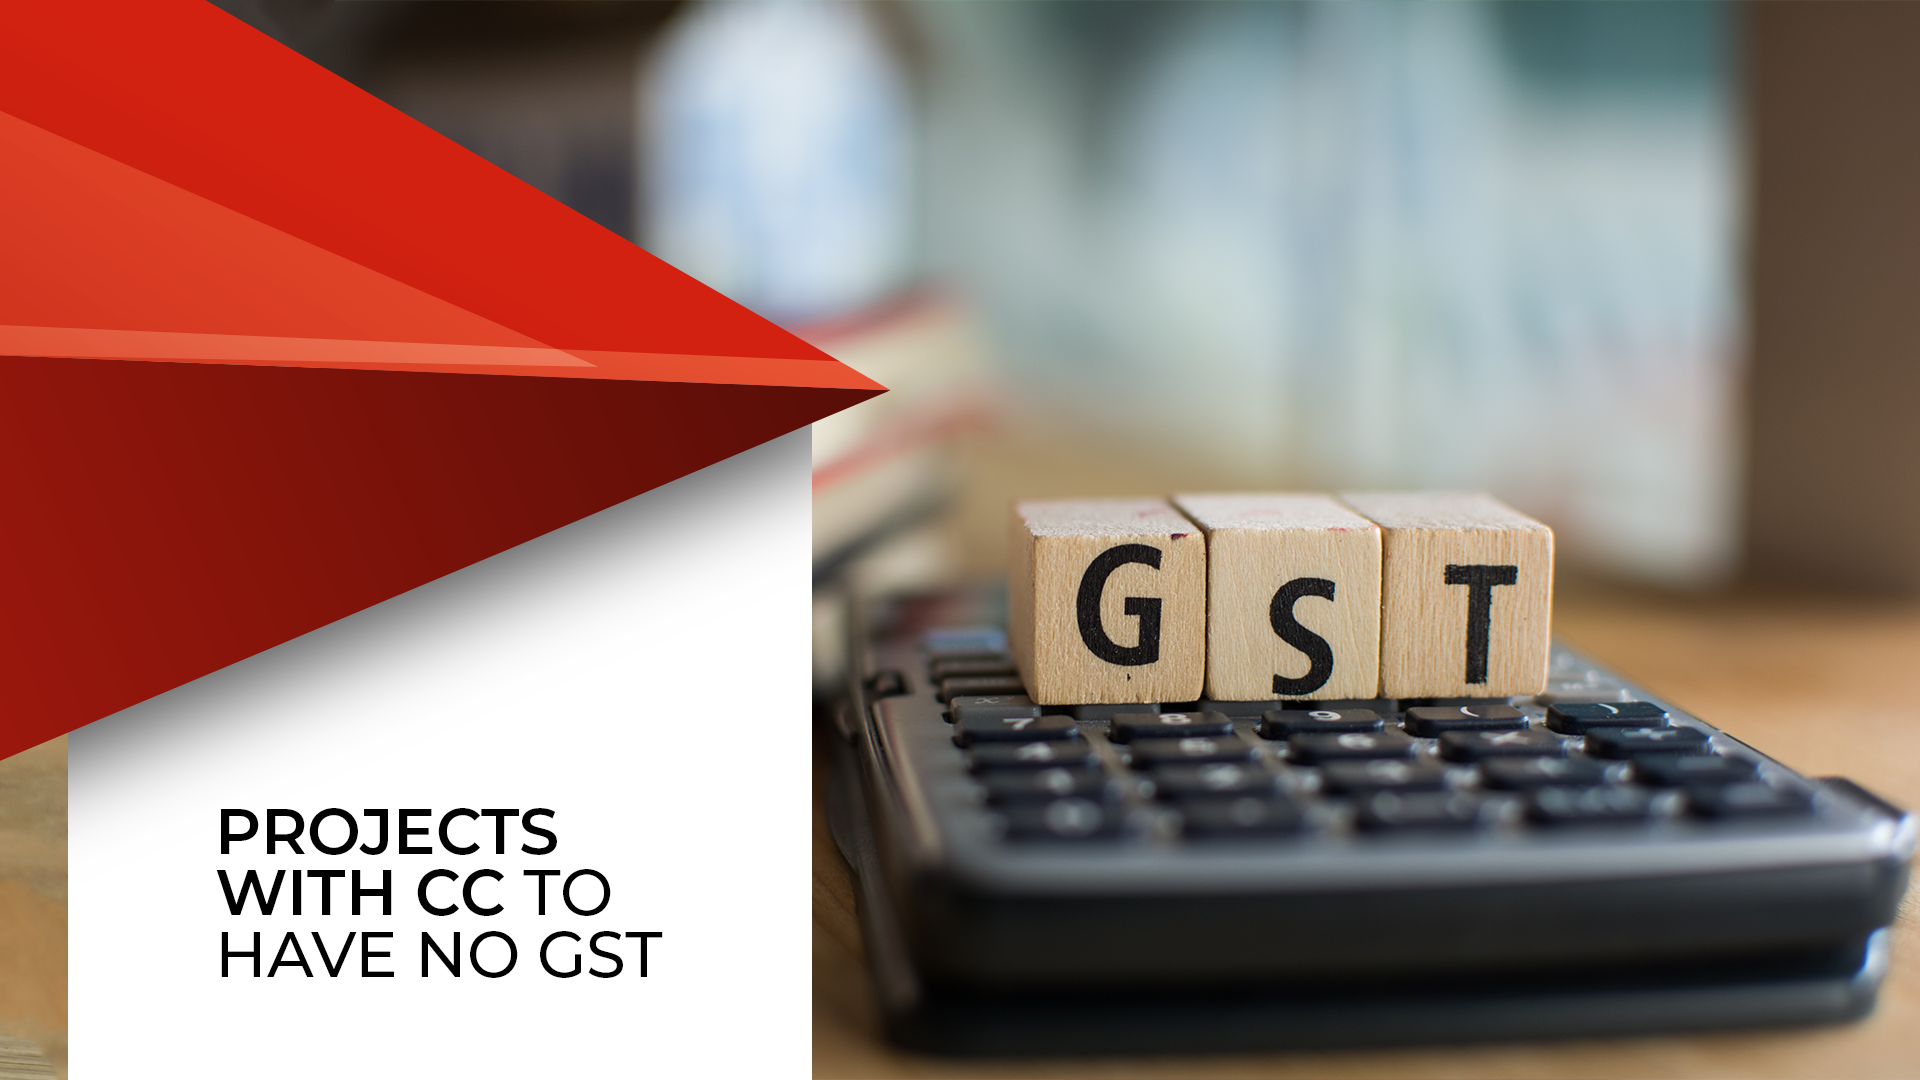 Buyers Exempted From GST Only On Homes With CC